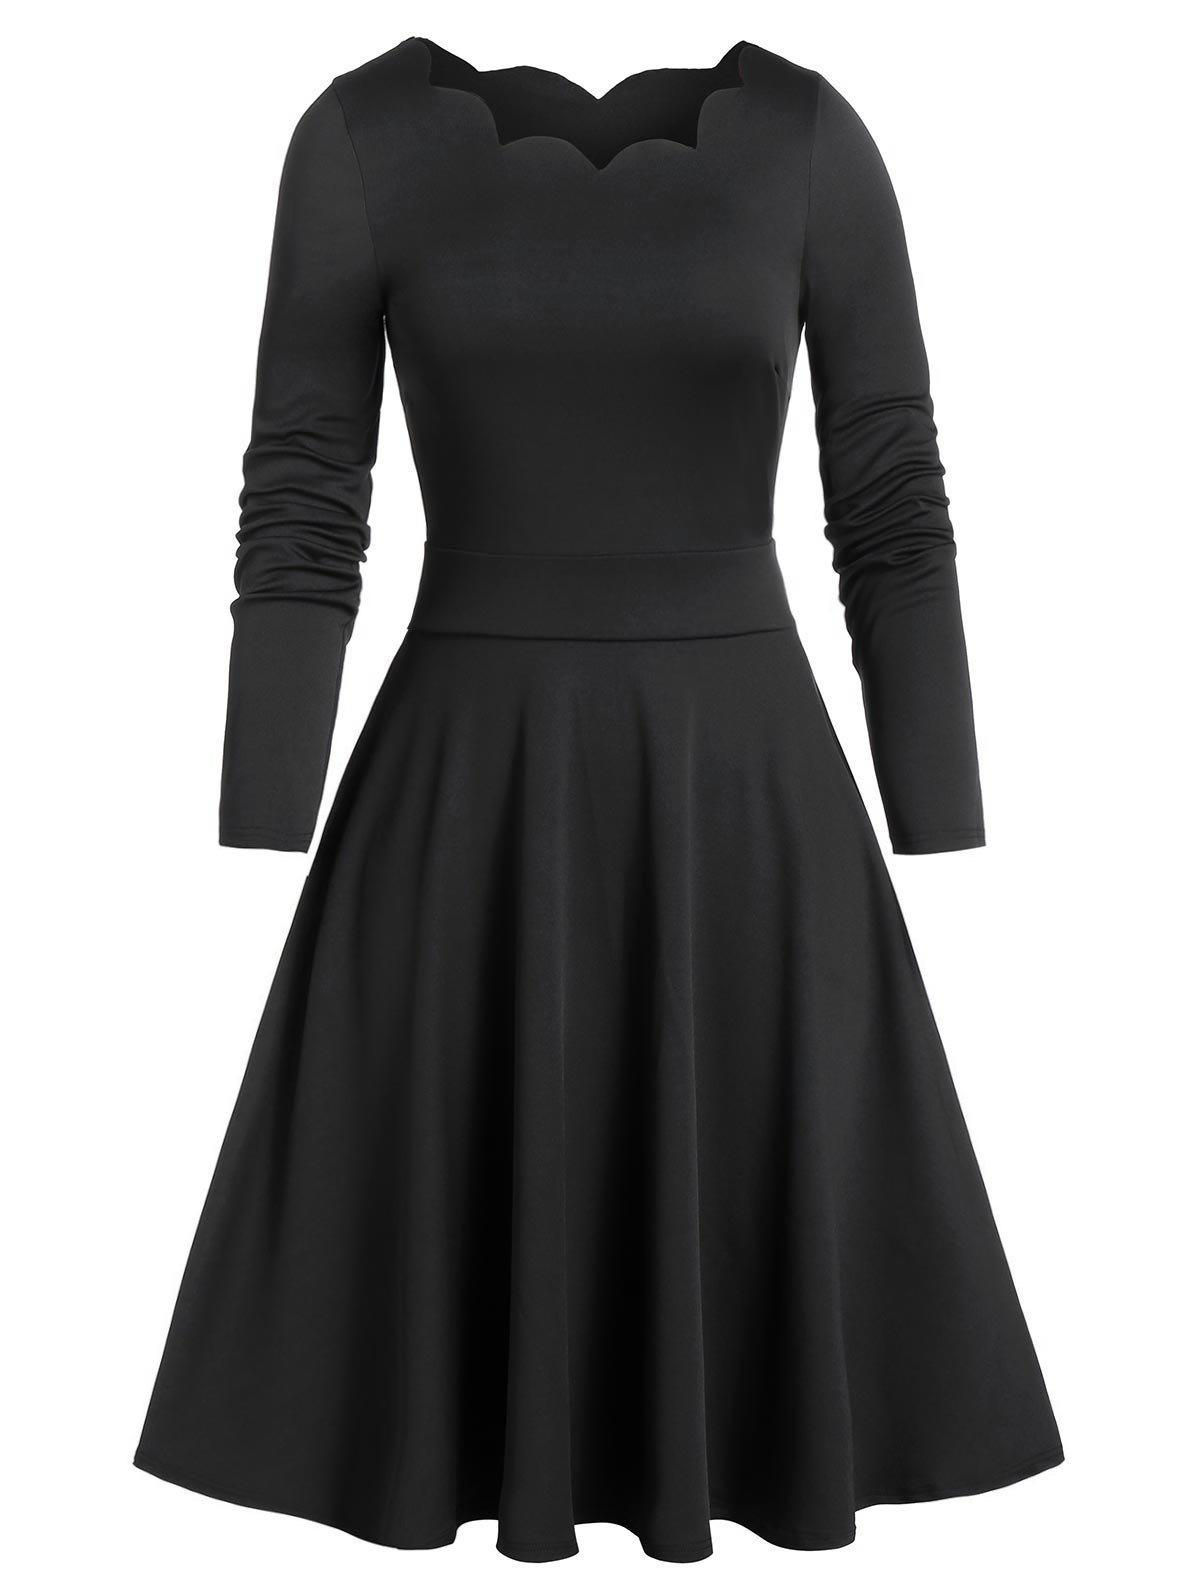 Store Scalloped Long Sleeve Vintage Flare Dress